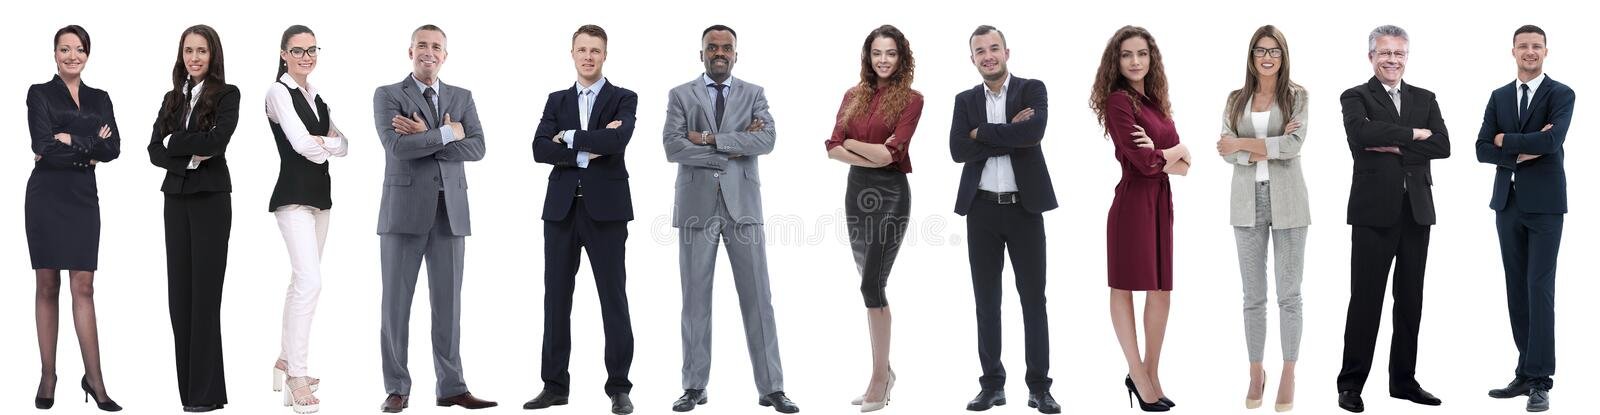 Group of successful business people isolated on white. Background stock photography